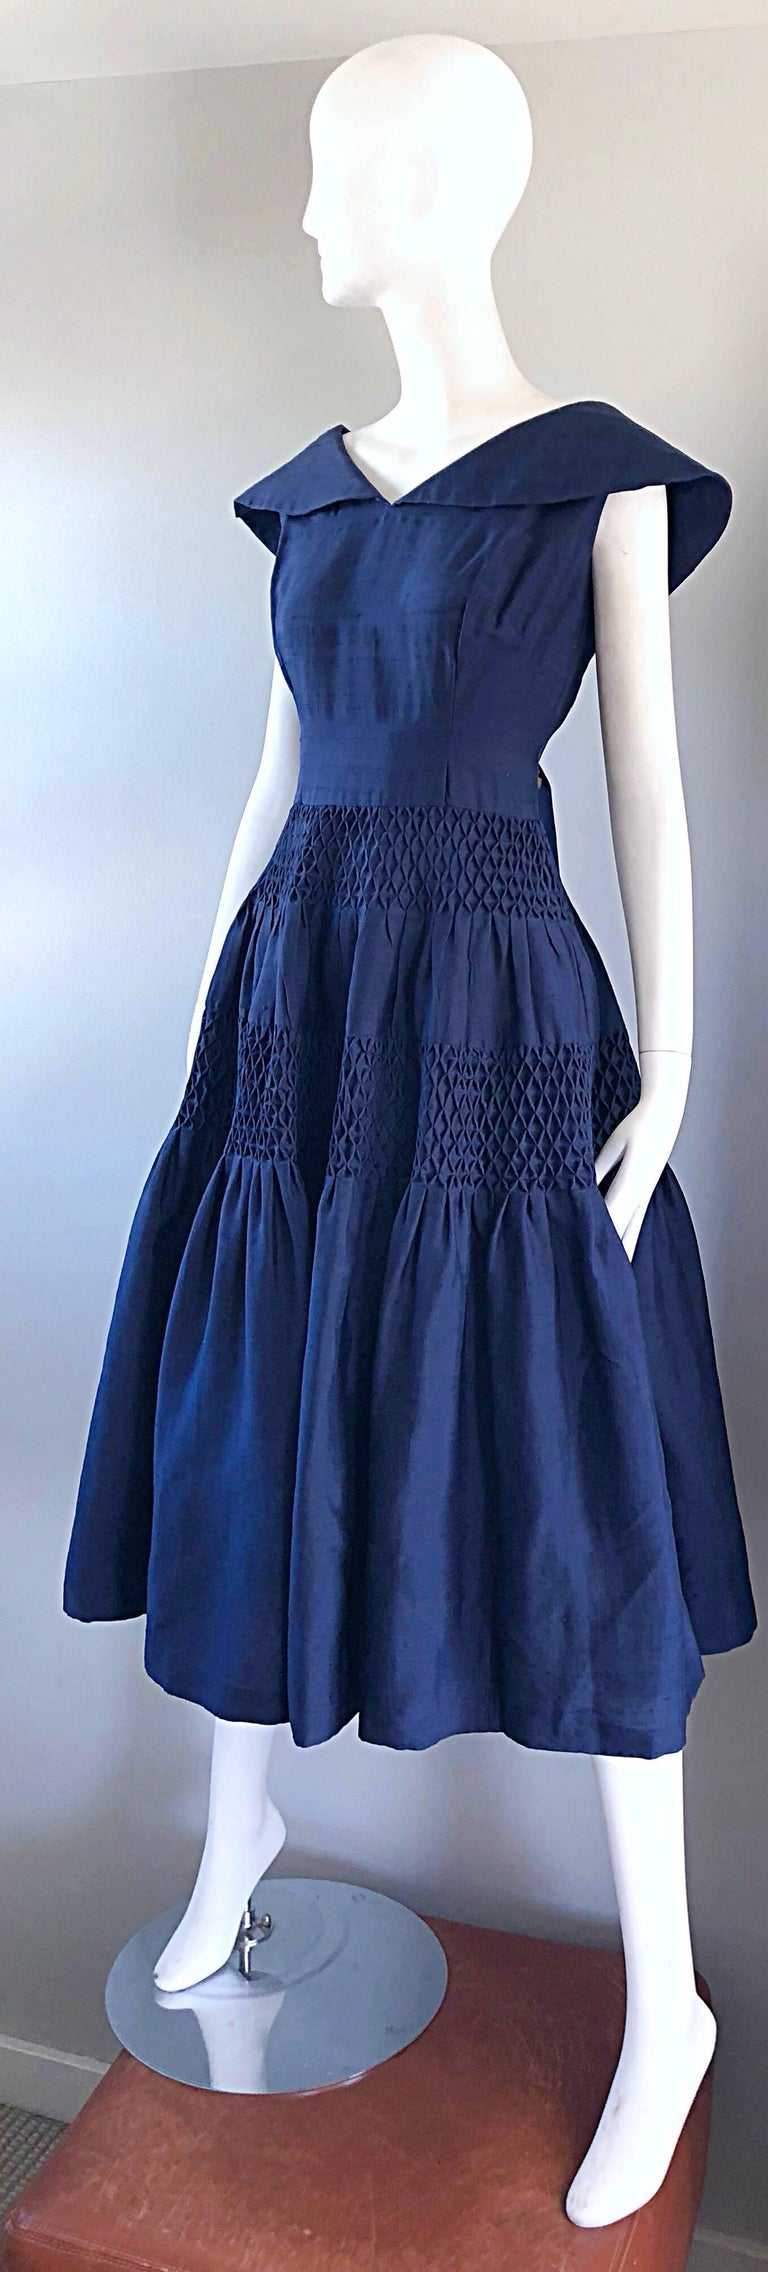 1950s Demi Couture Navy Blue Silk Shantung Vintage 50s Nautical Dress For Sale 1